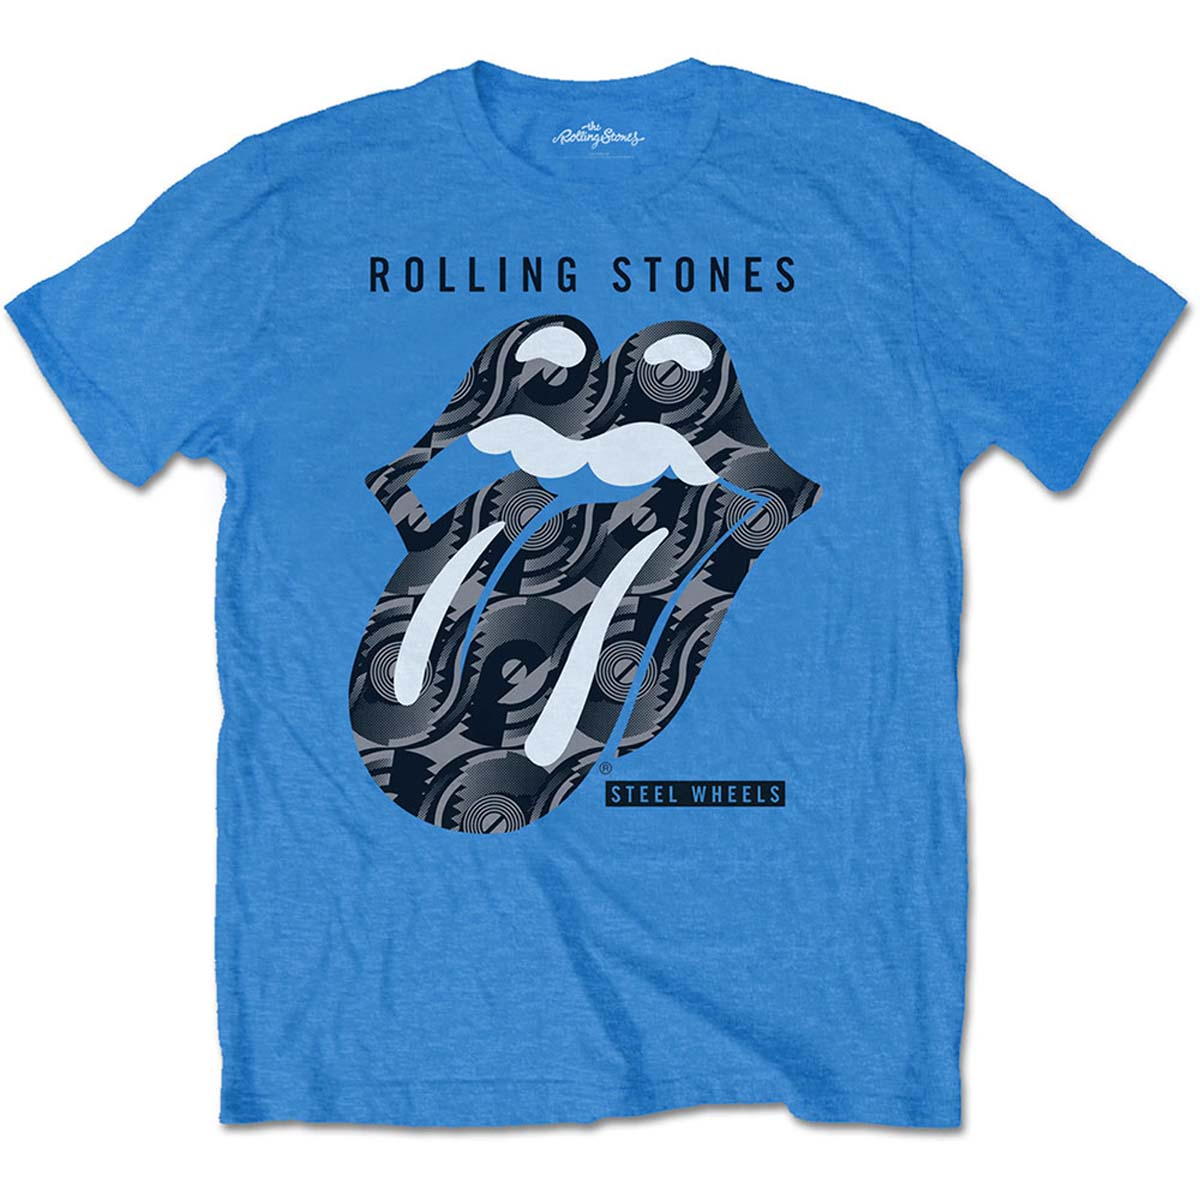 ROLLING STONES Keith Richards President Mens T Shirt Unisex Tee Official Merch